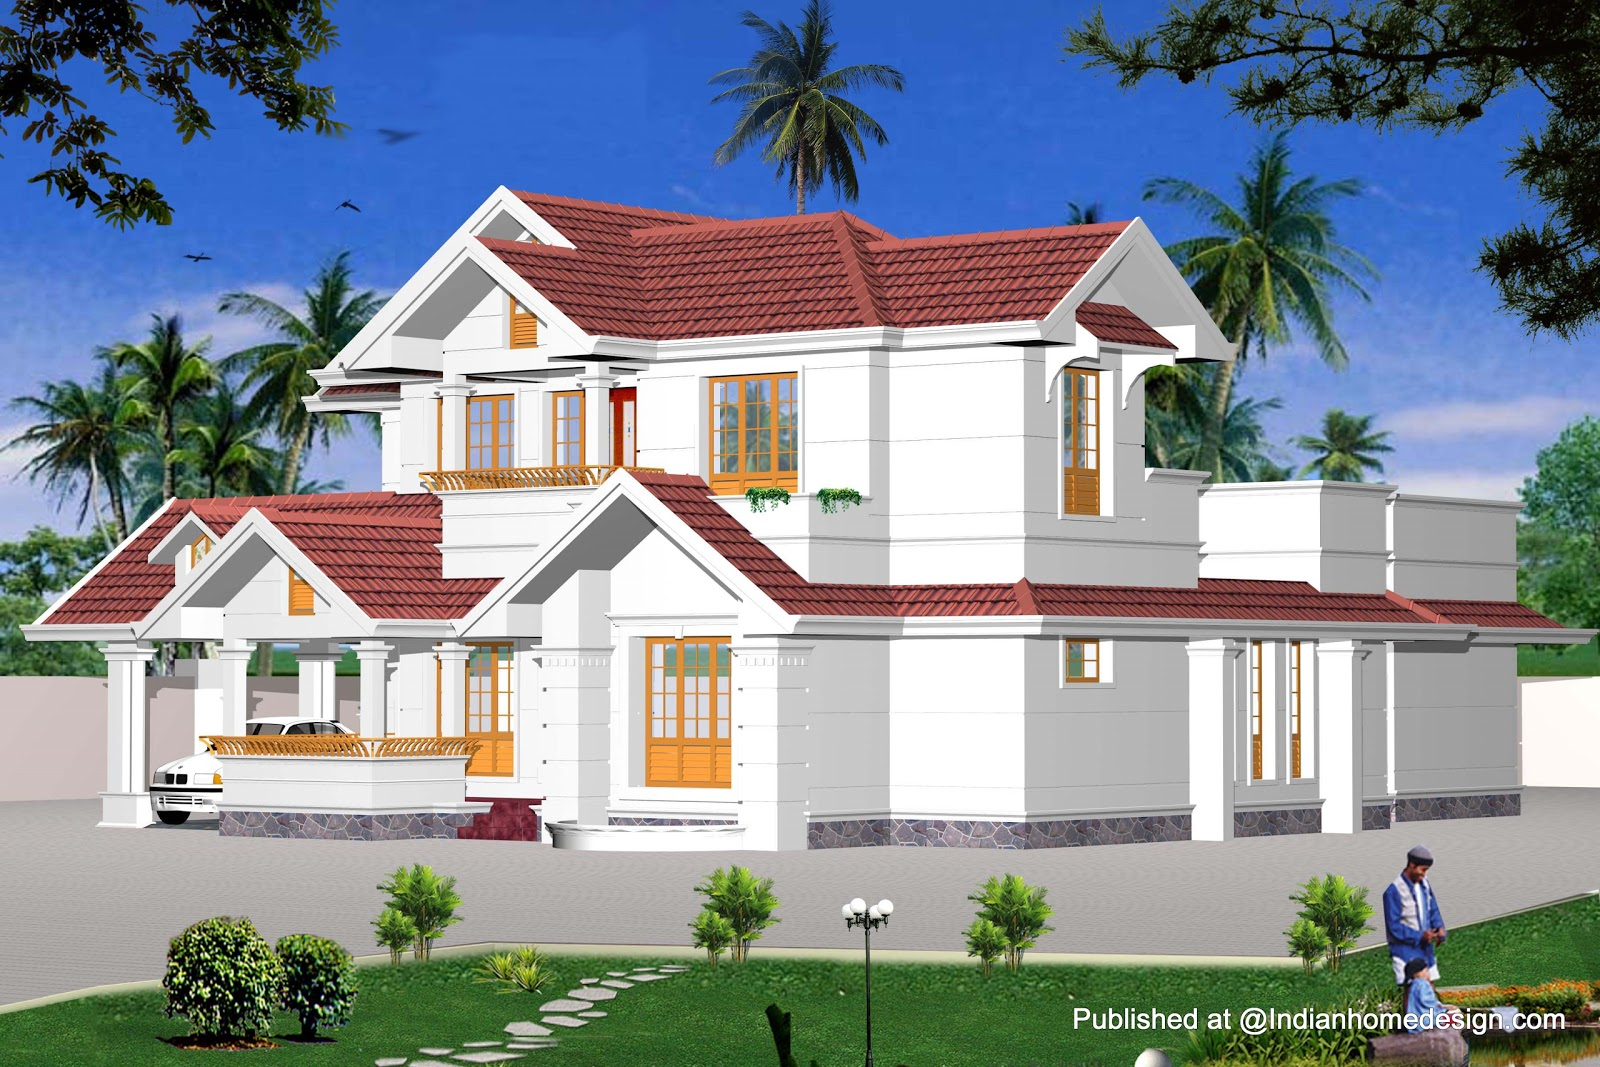 Plans Home Building Home Plans House Design And House Building